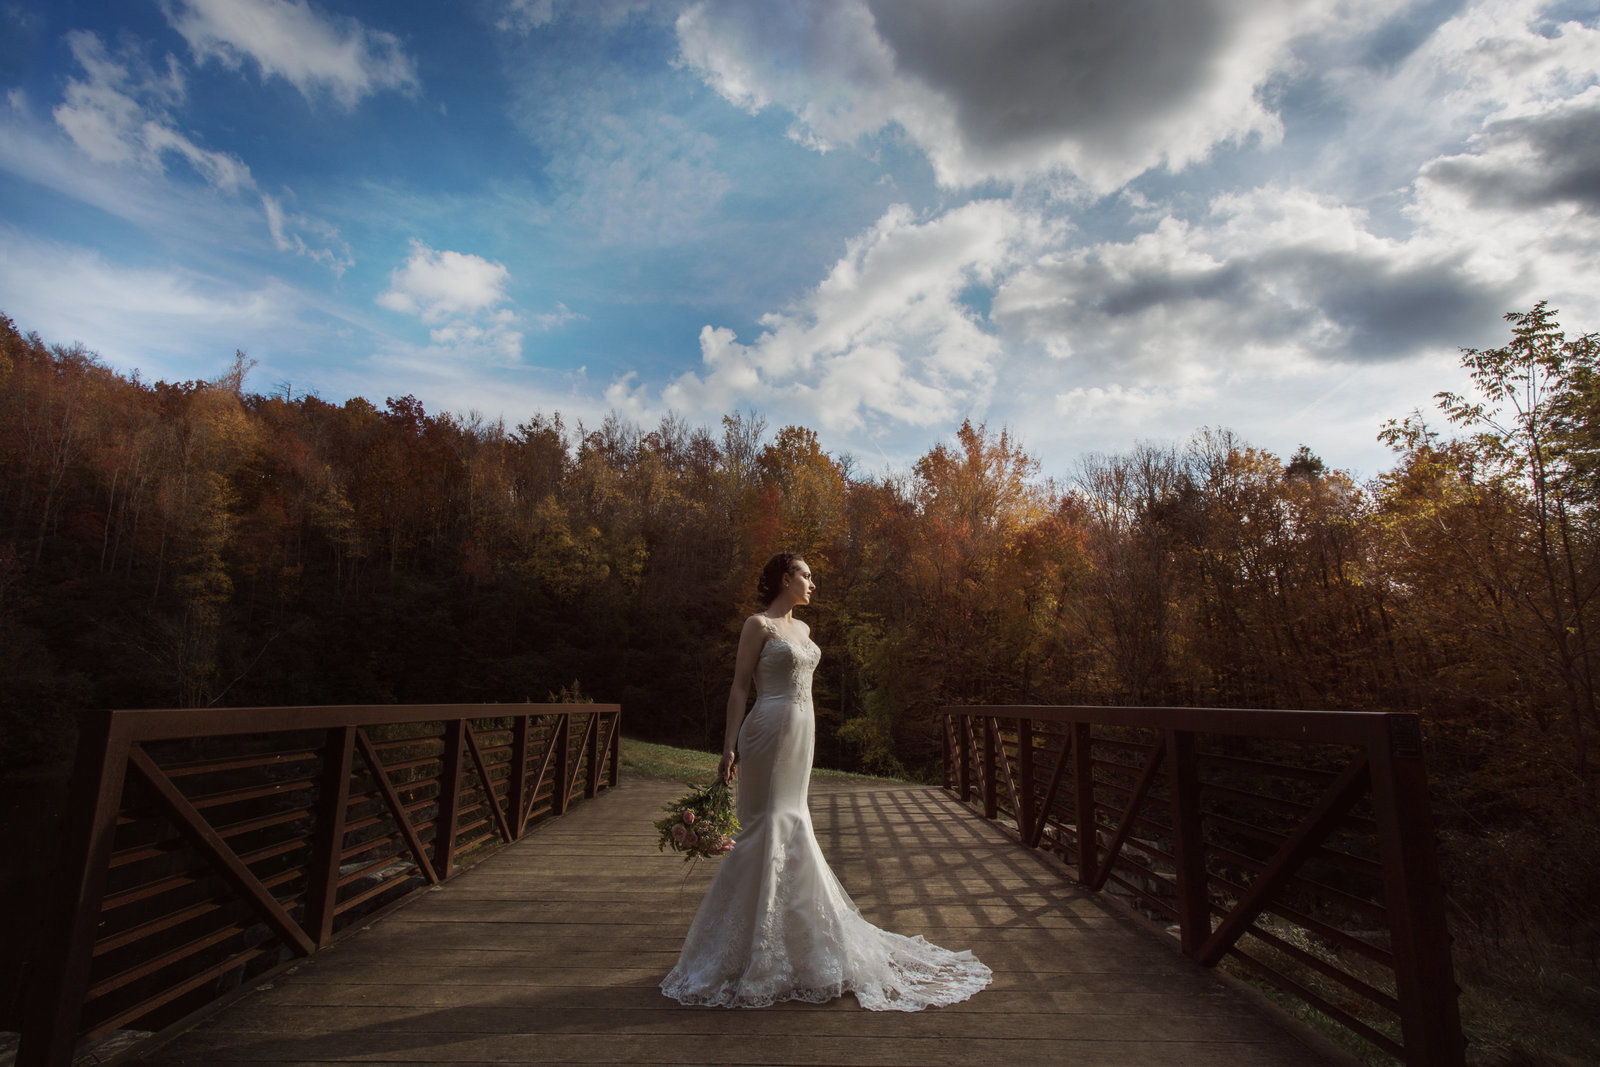 charlotte wedding photographer jamie lucido creates a dramatic bridal portrait along the Blue Ridge Parkway